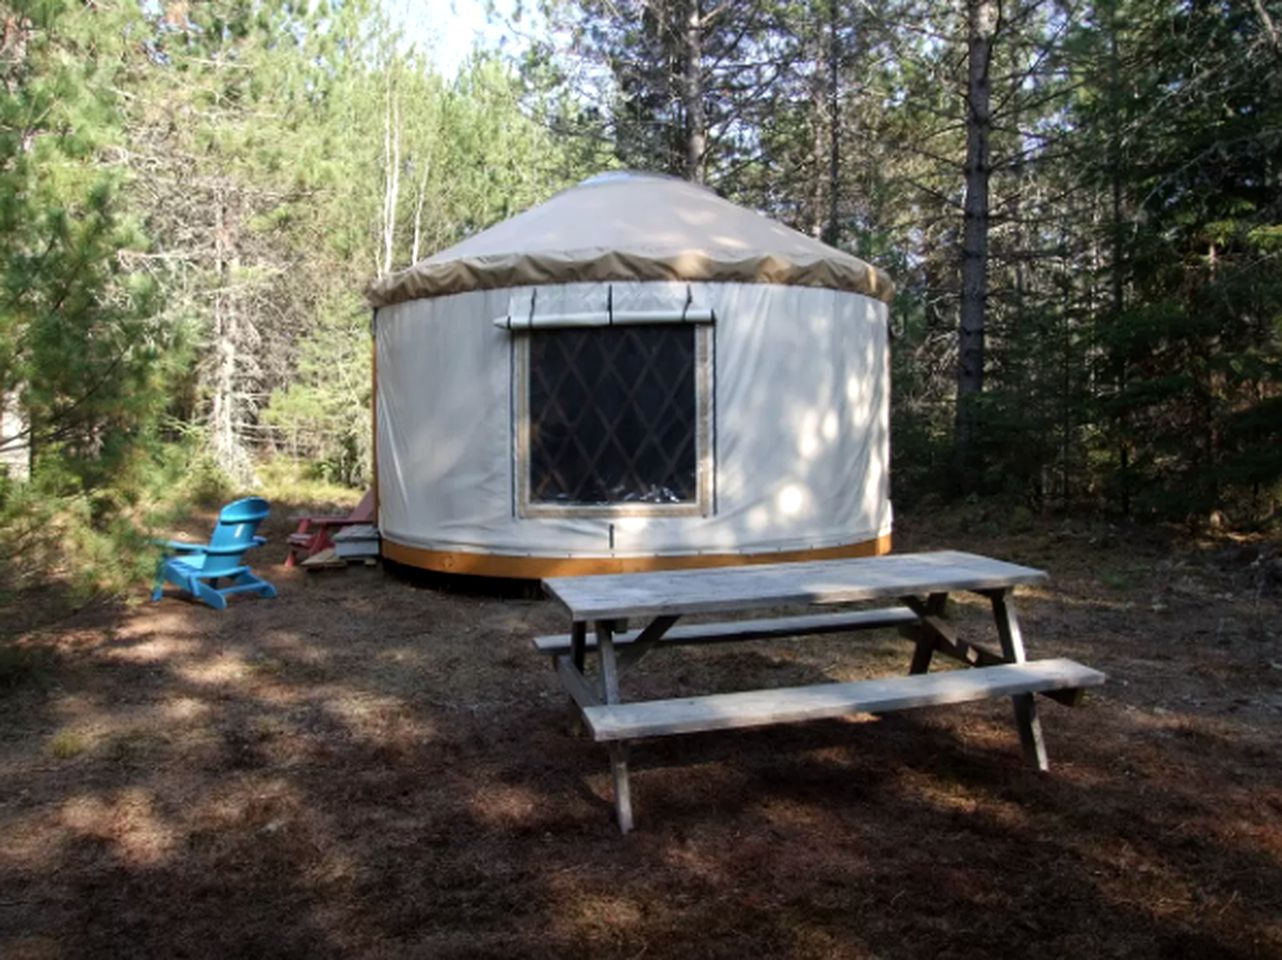 Secluded spot for luxury yurt camping in Quebec